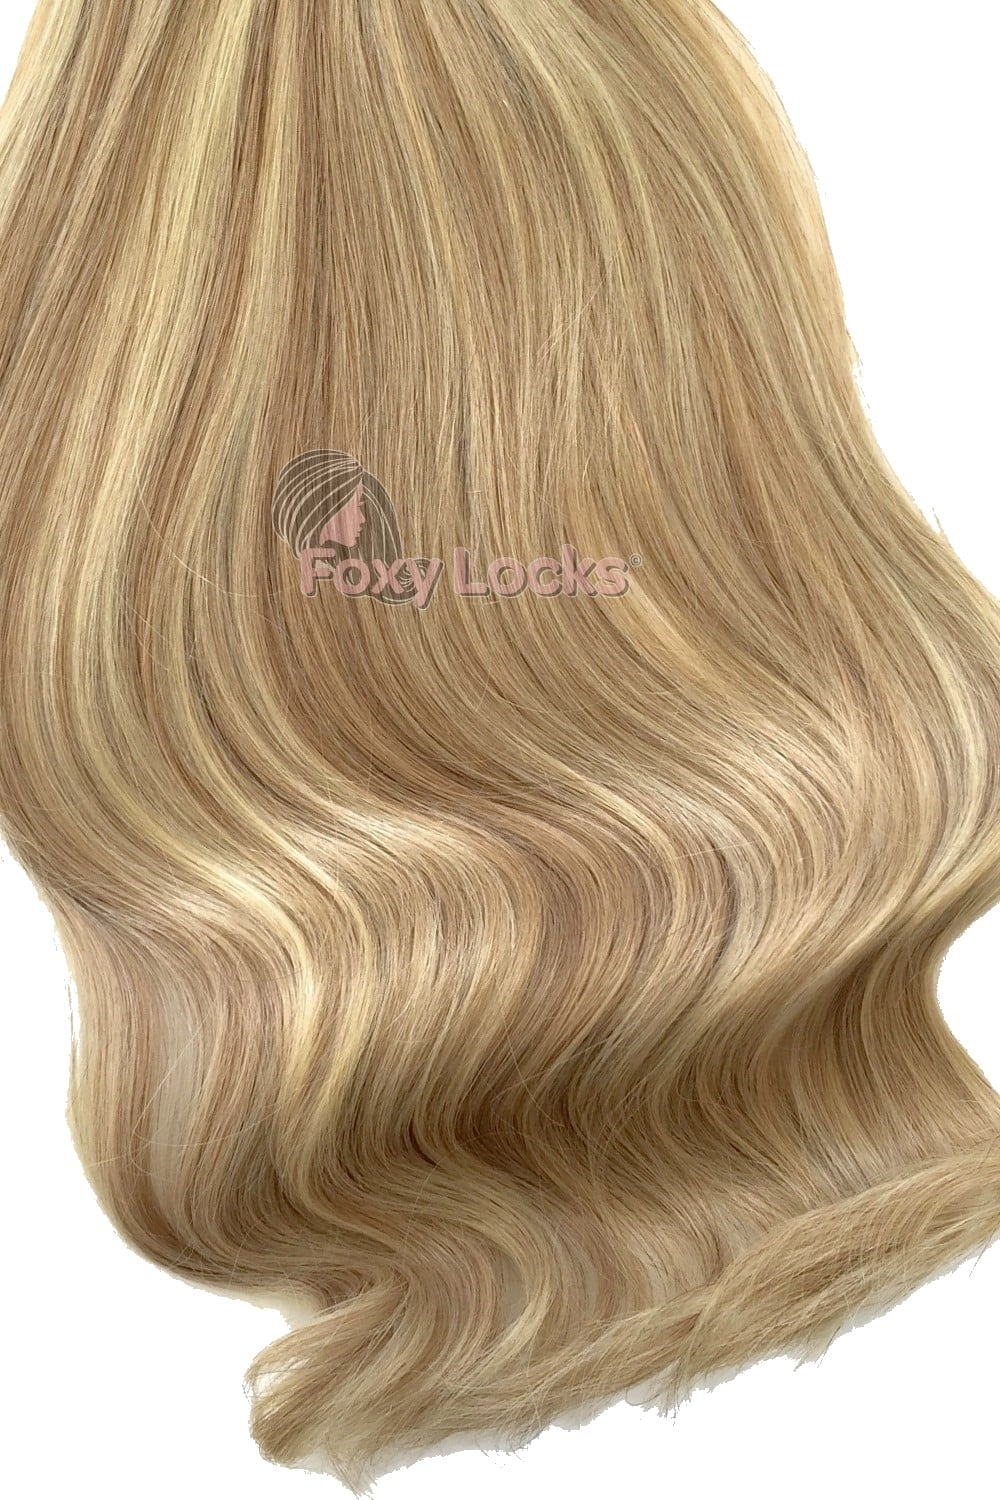 Blonde luxurious 24 clip in human hair extensions 280g latte blonde luxurious 24 clip in human hair extensions 280g pmusecretfo Image collections